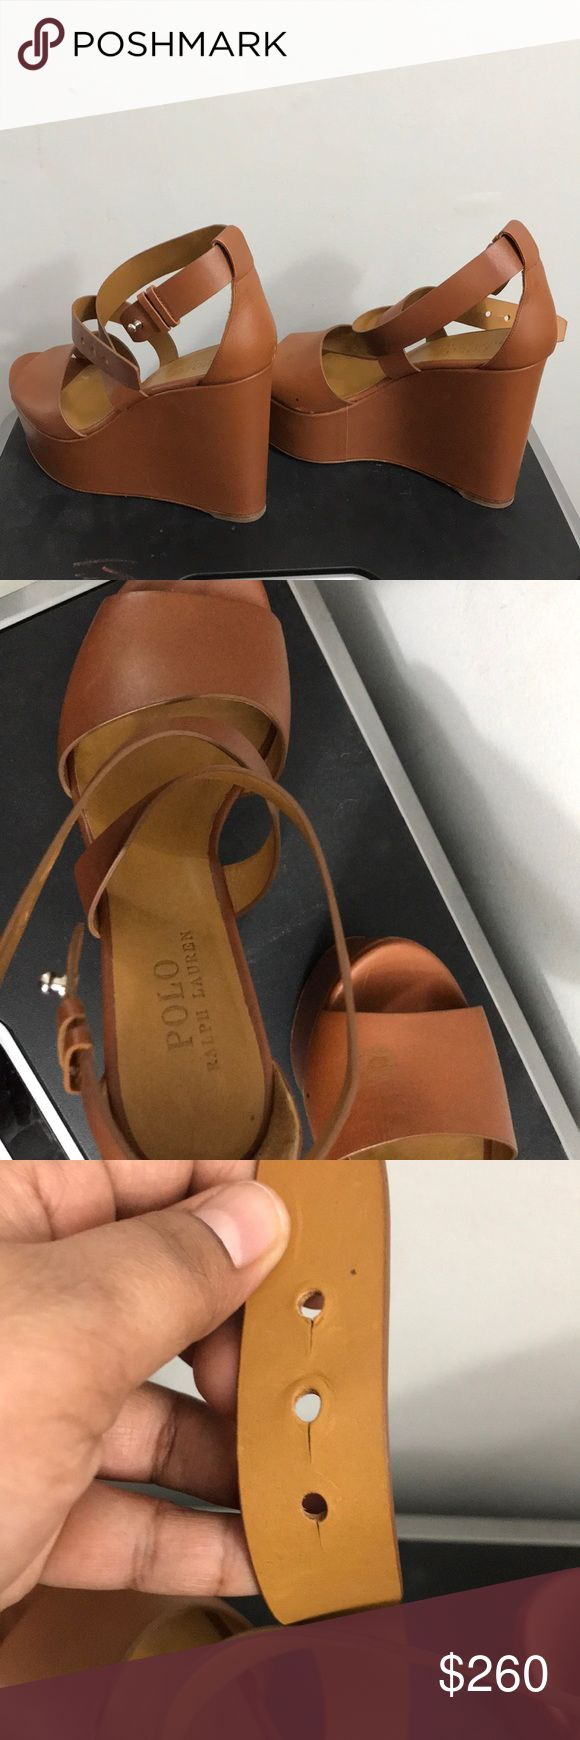 """Polo Ralph Lauren wedge Heels Worn a couple of times but still looks veery nice! Have shown all the flaws in the pictures, consider pictures as a part of description! Approximately 5"""" Polo by Ralph Lauren Shoes Wedges"""